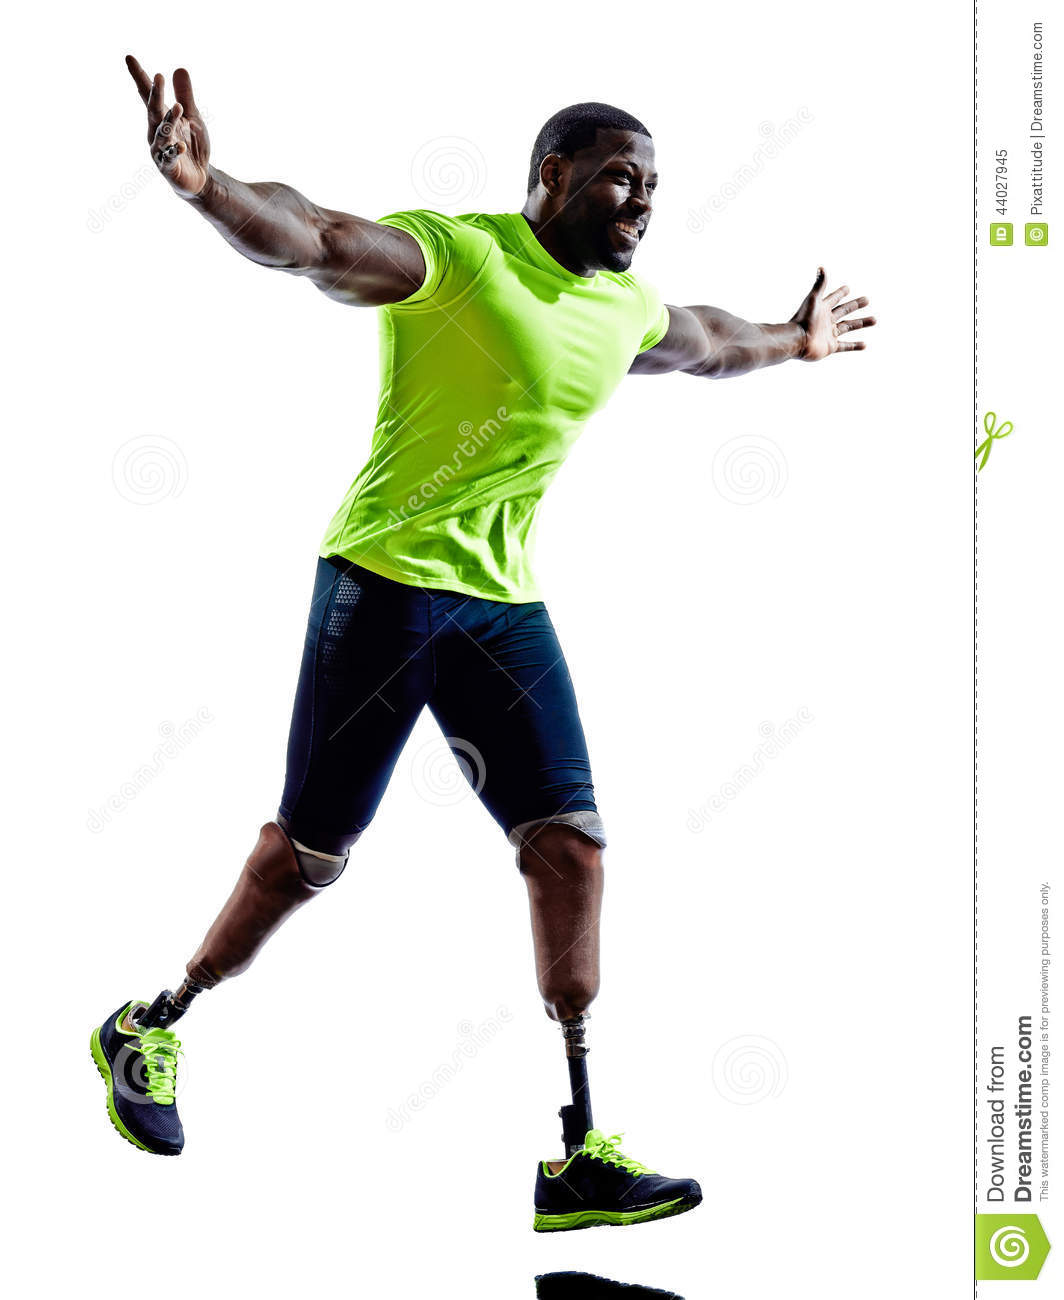 black runners with prothesis Professional running and jumping prosthetic leg below knee black silhouette - buy this stock vector on shutterstock & find other images.